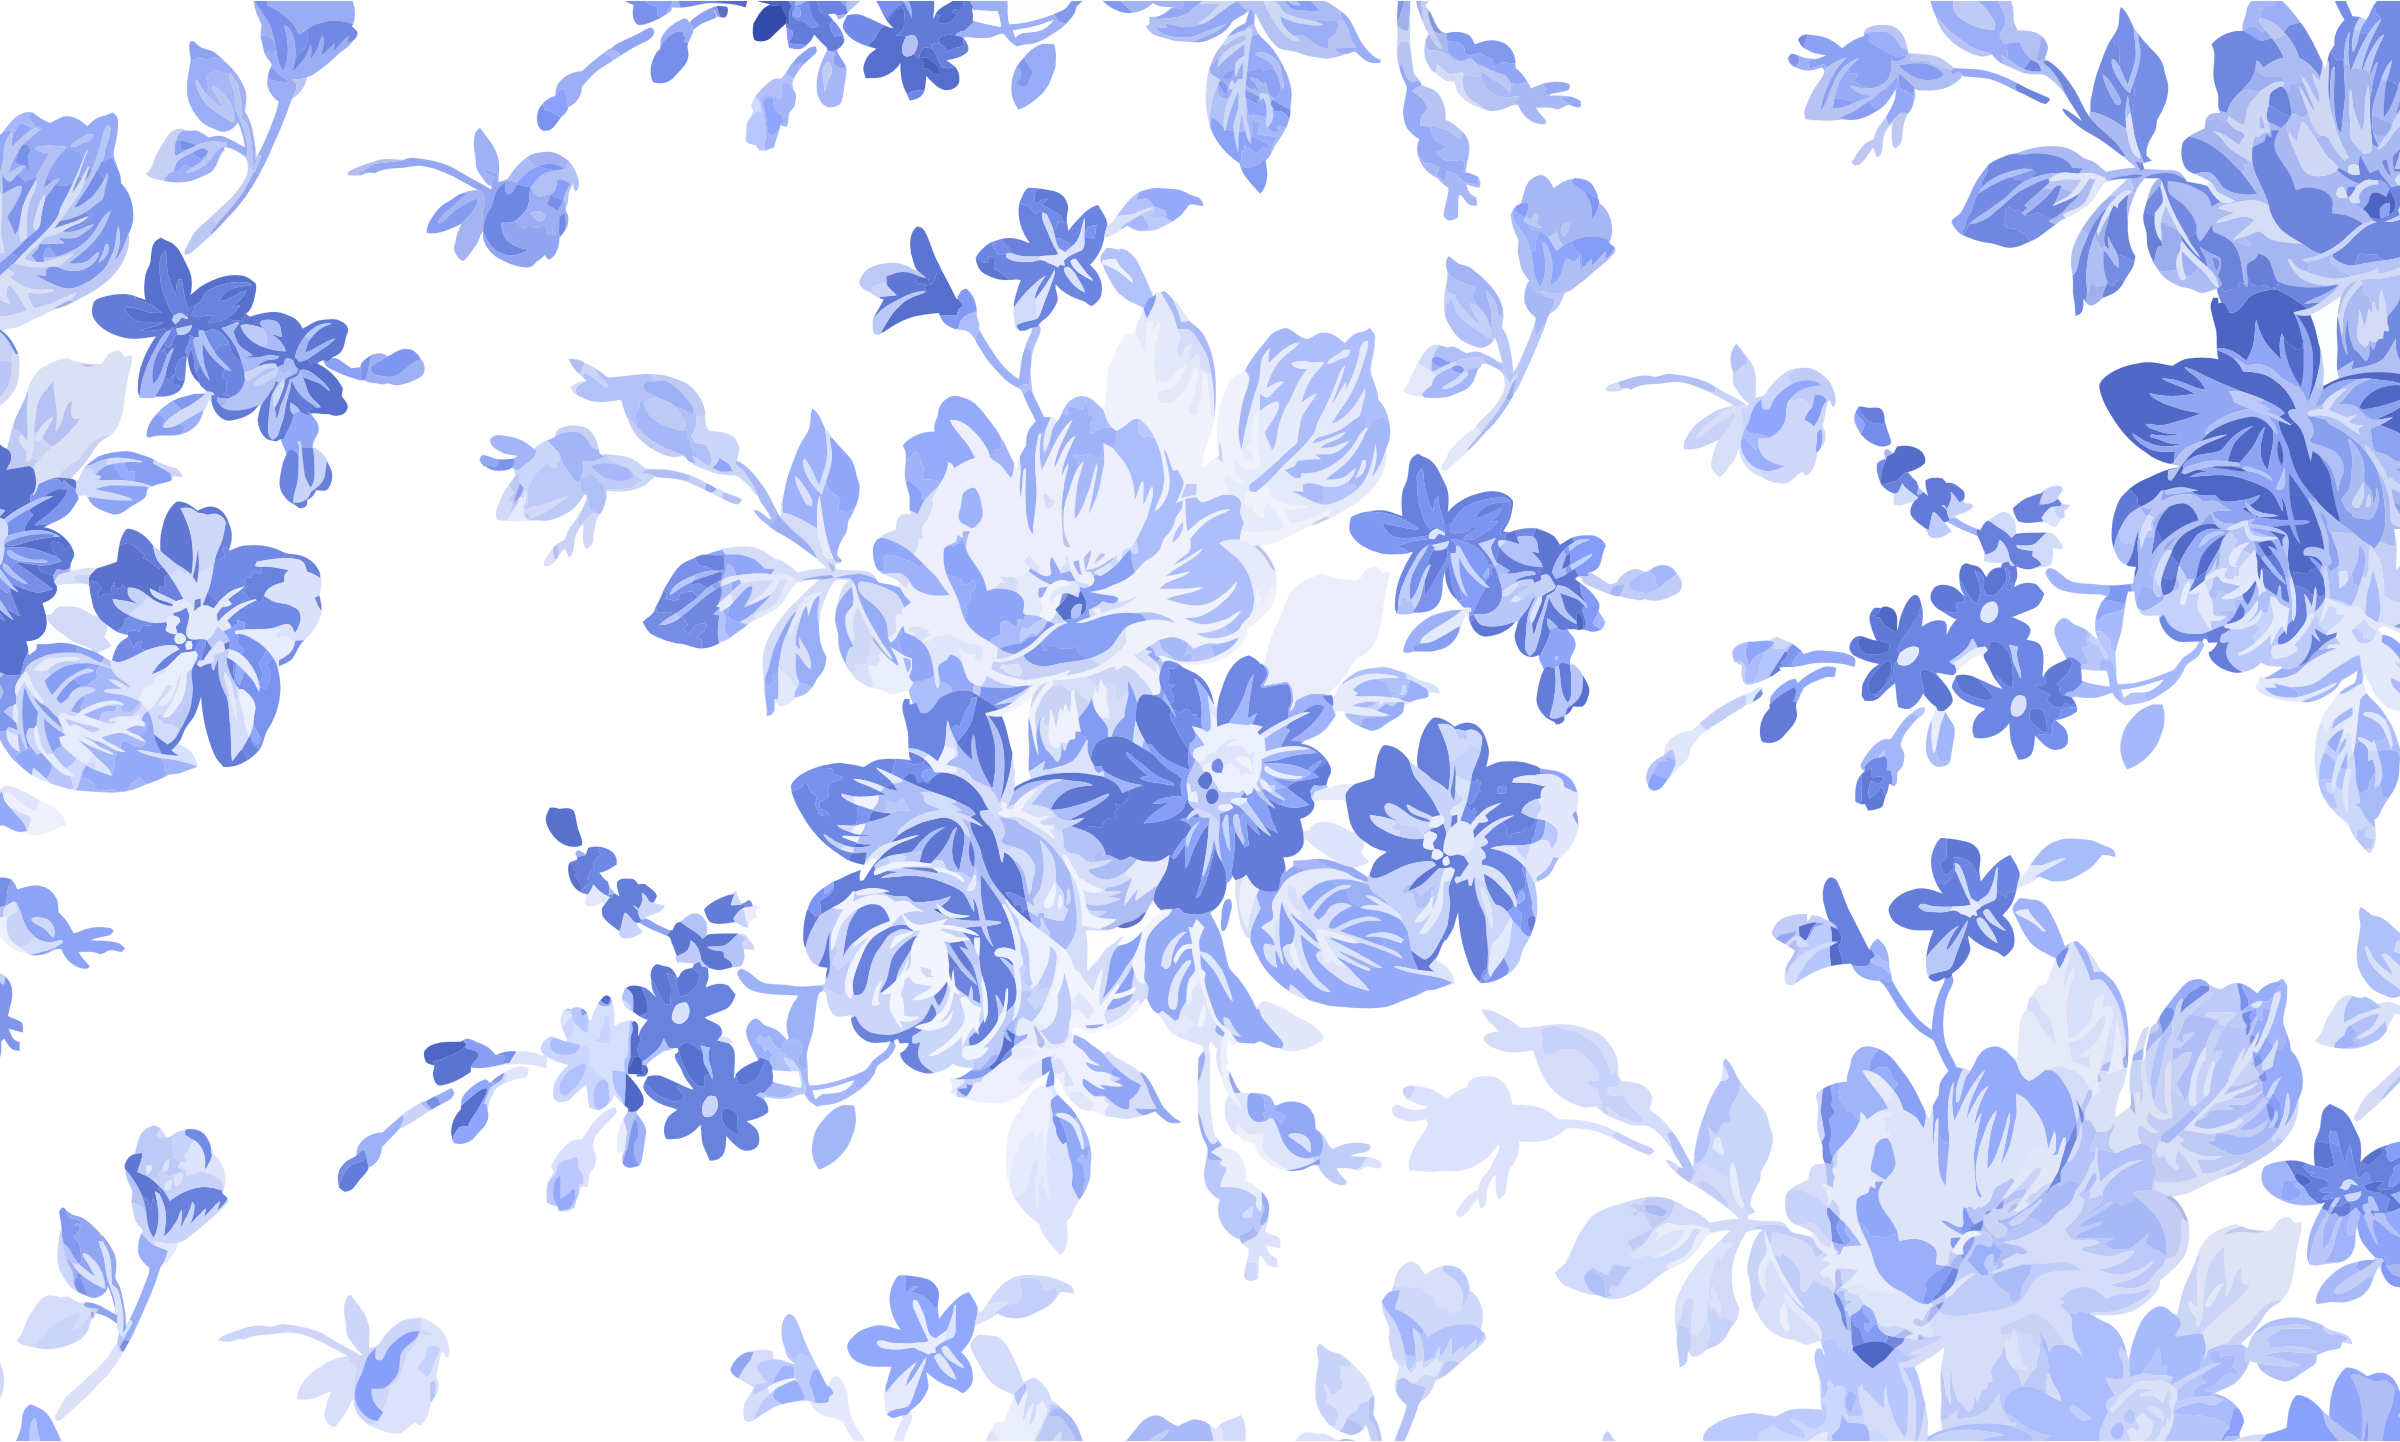 Blue Floral Watercolor Background Floral, Watercolor